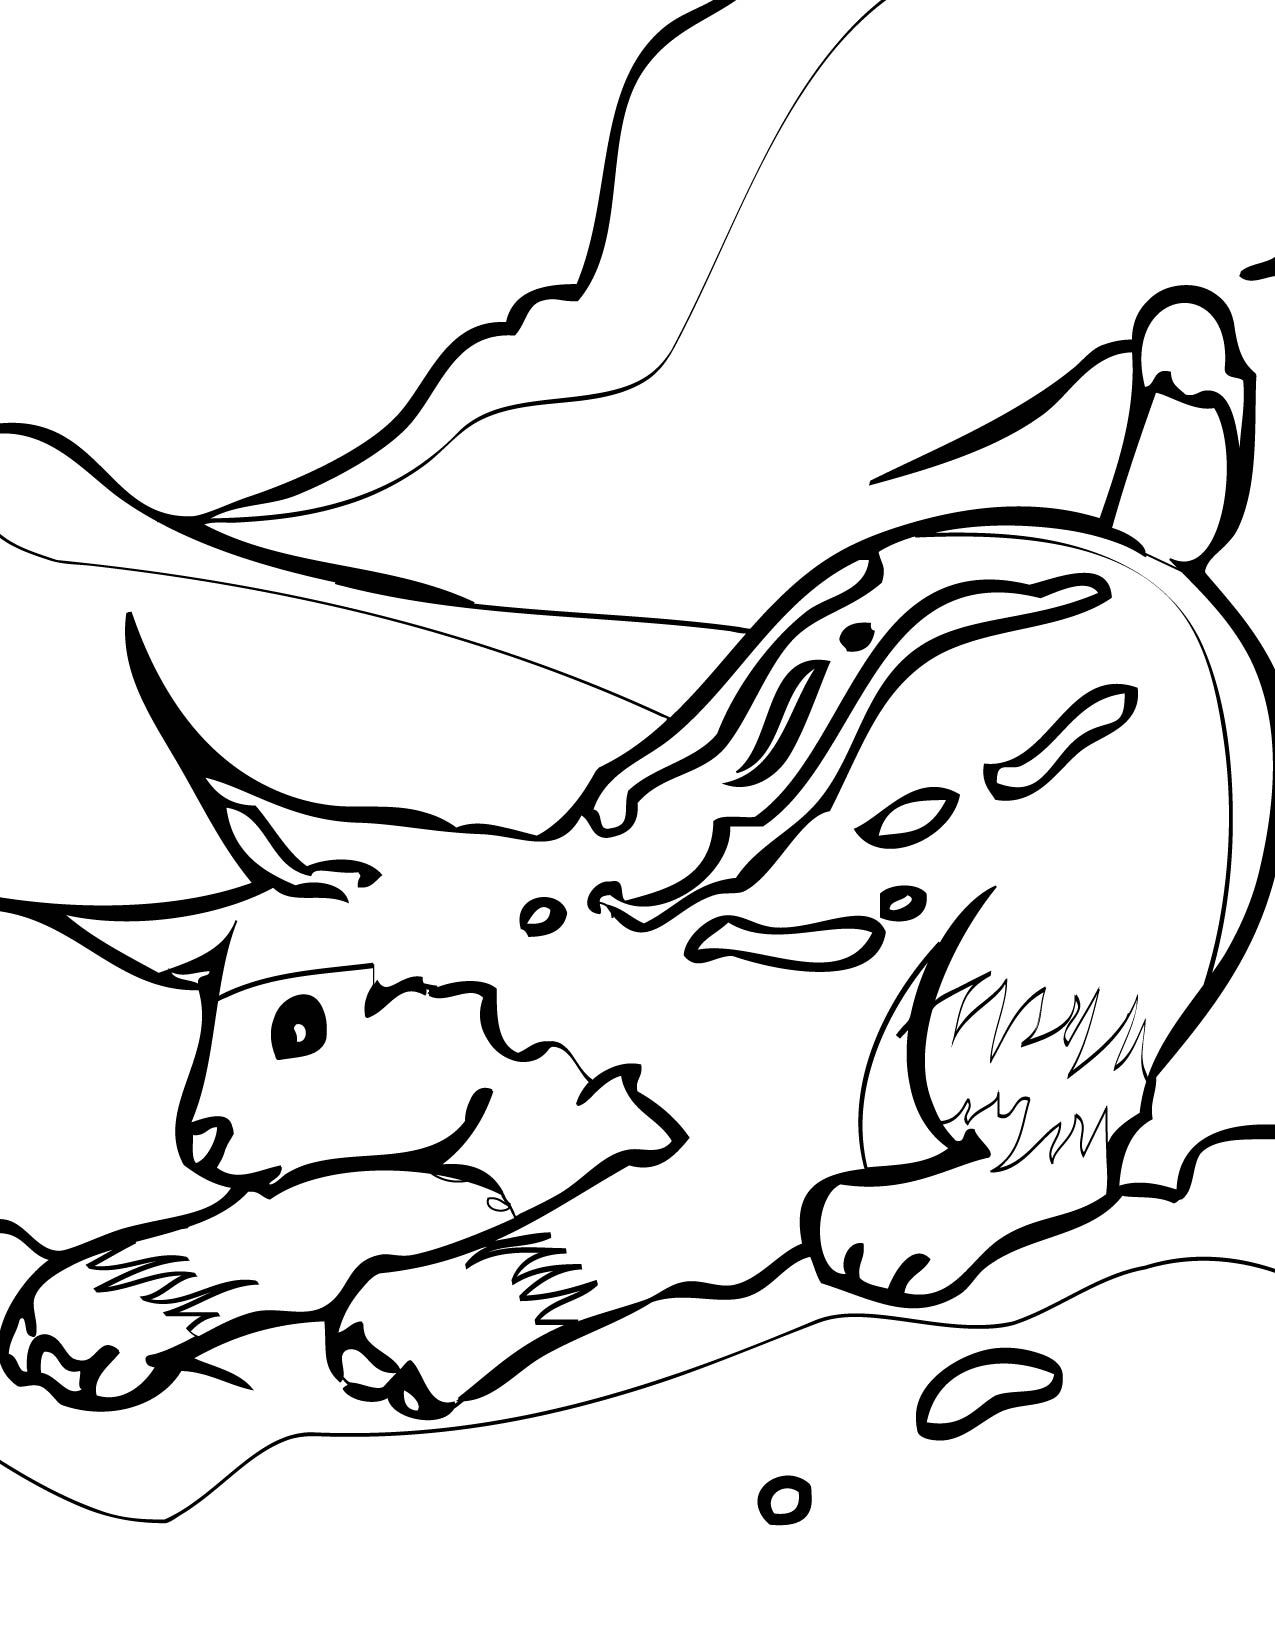 coloring pages of arctic animals - photo#31